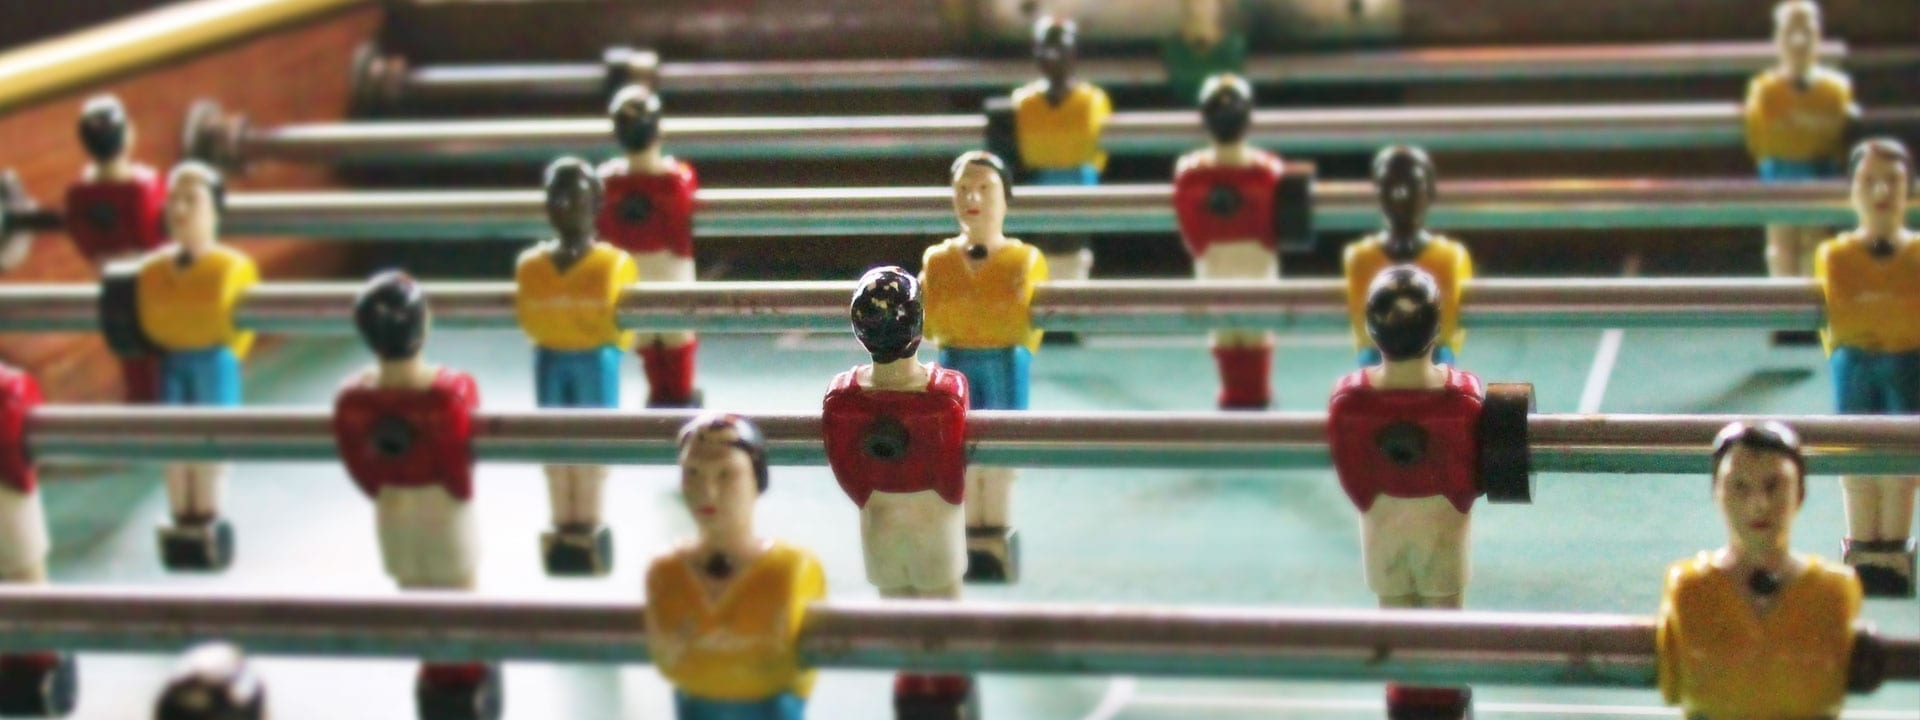 SHOP FOOSBALL TABLES